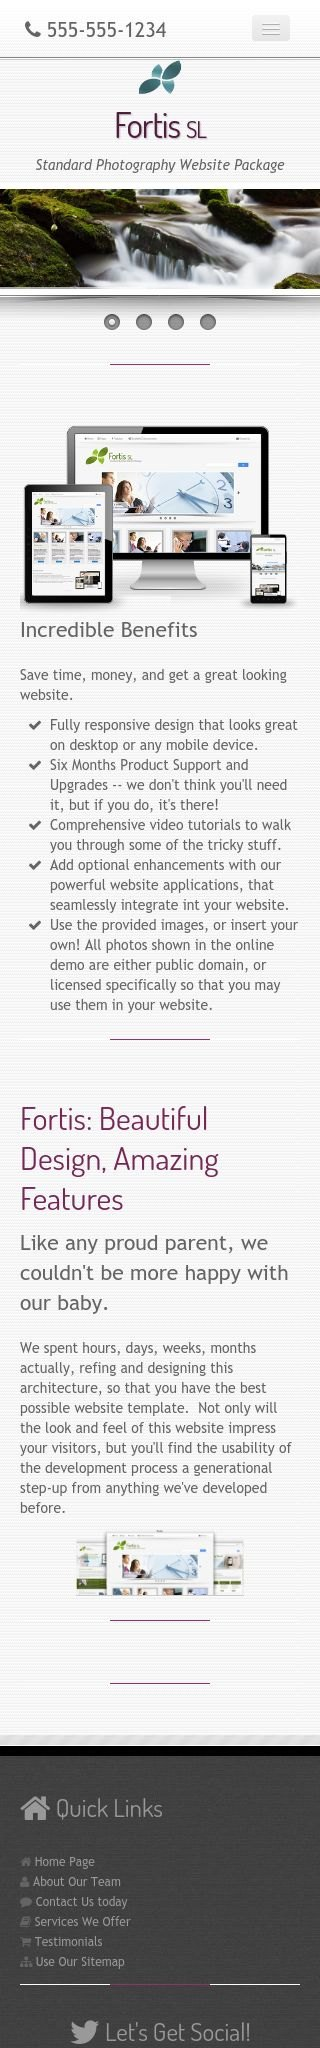 Mobile: Photography Web Template